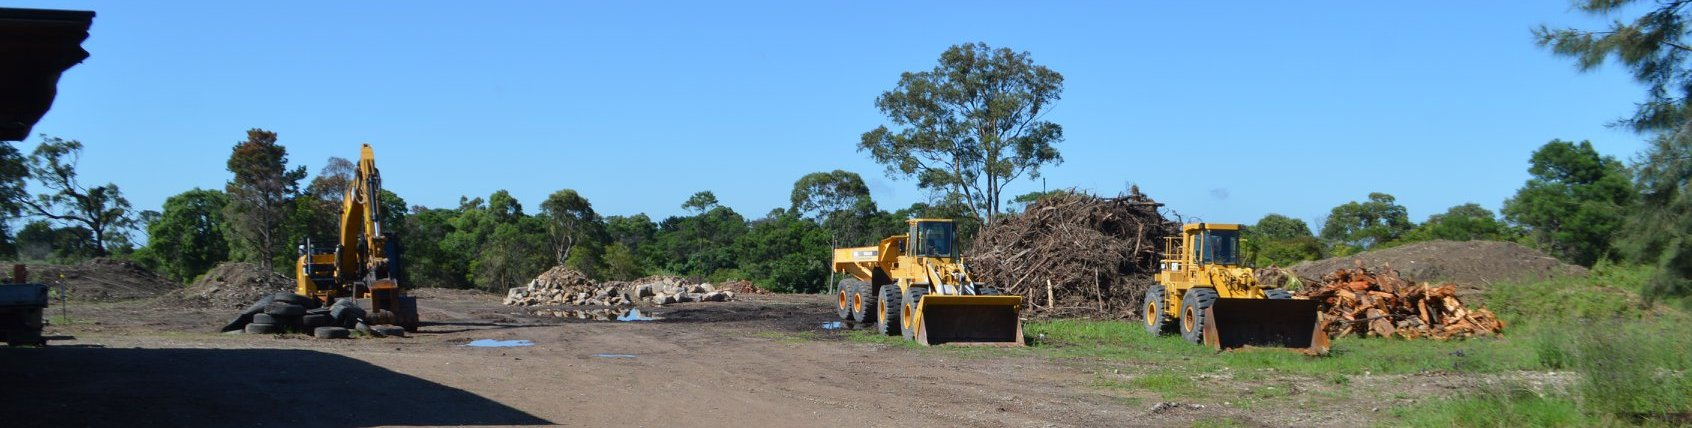 New site for tip (recycling) at Somersby, huge traffic congestion and noise 24hrs a day.